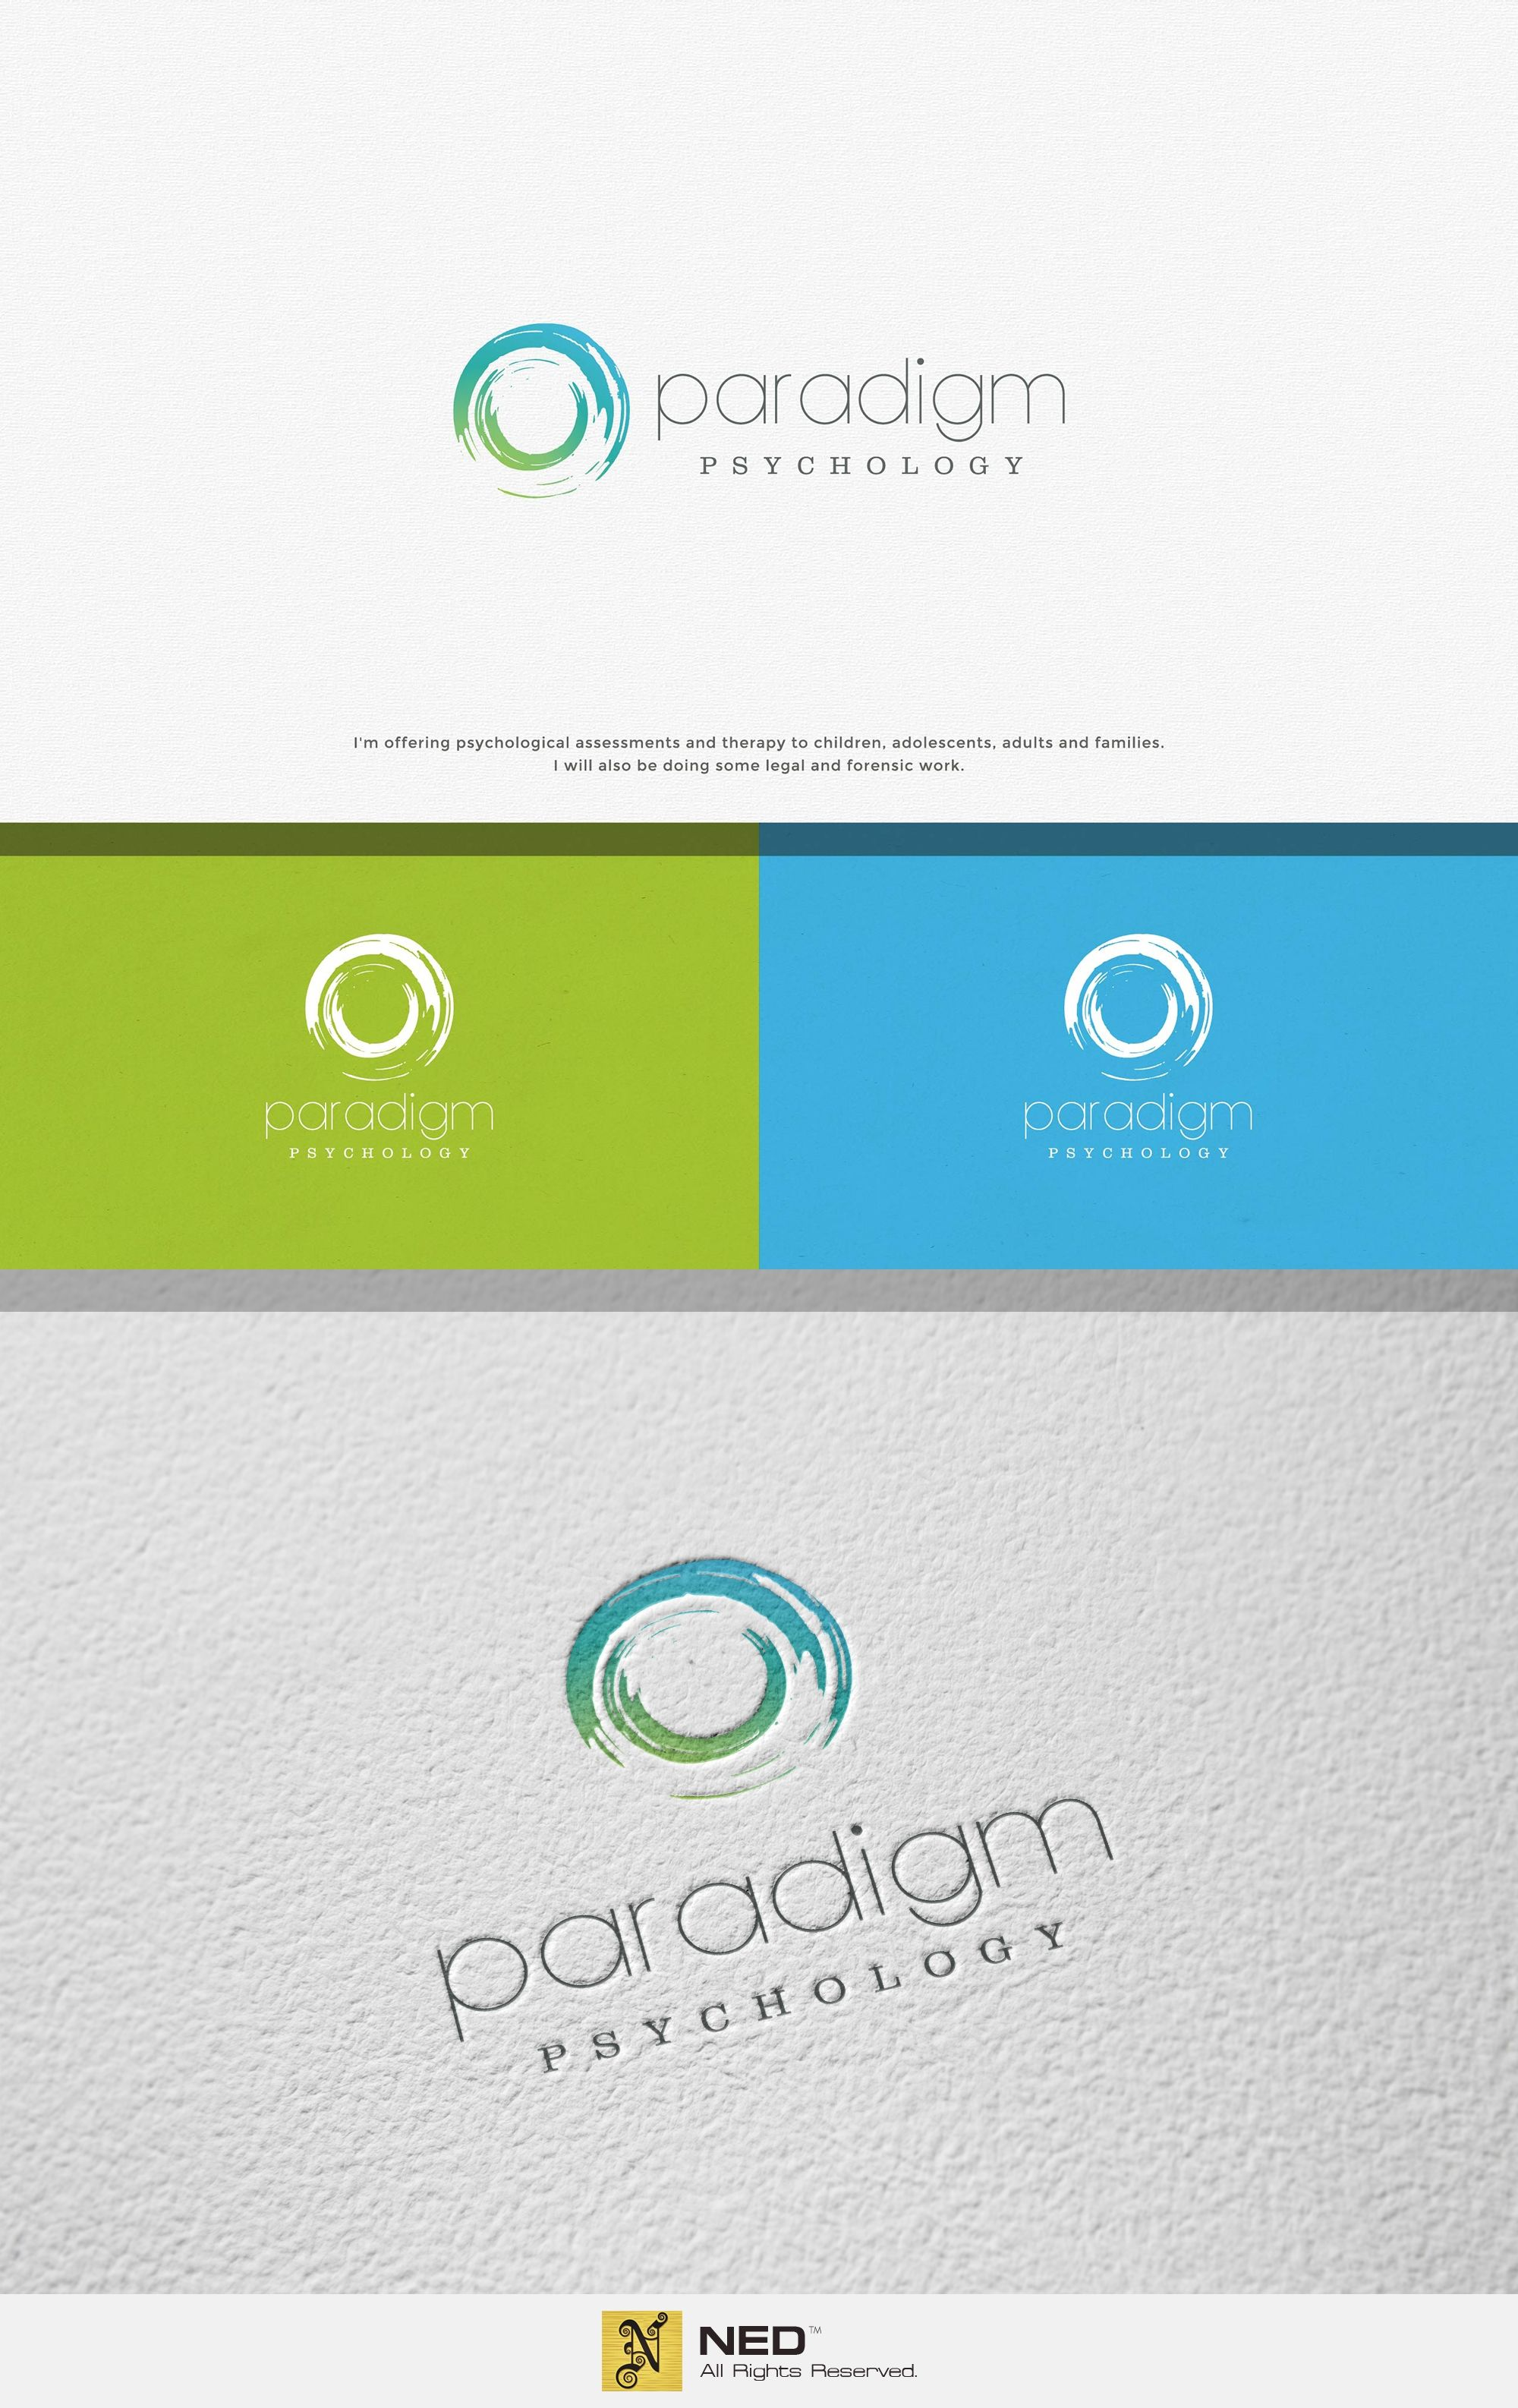 Design #45 by Ned™   Create a strong but warm logo for Paradigm Psychology